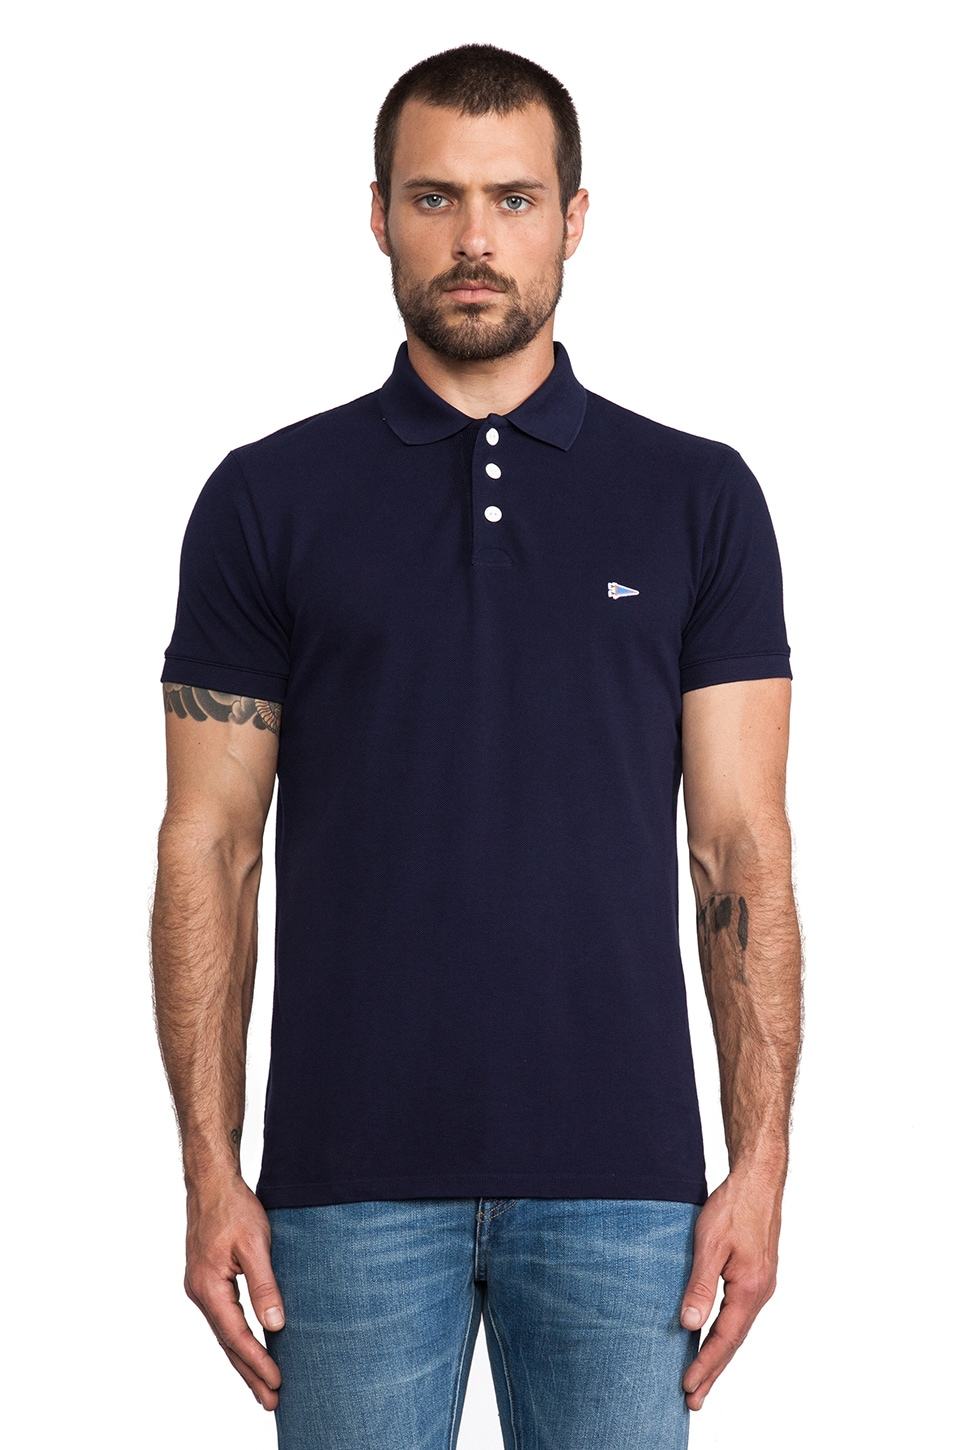 S&H Athletics Wade Polo in Navy